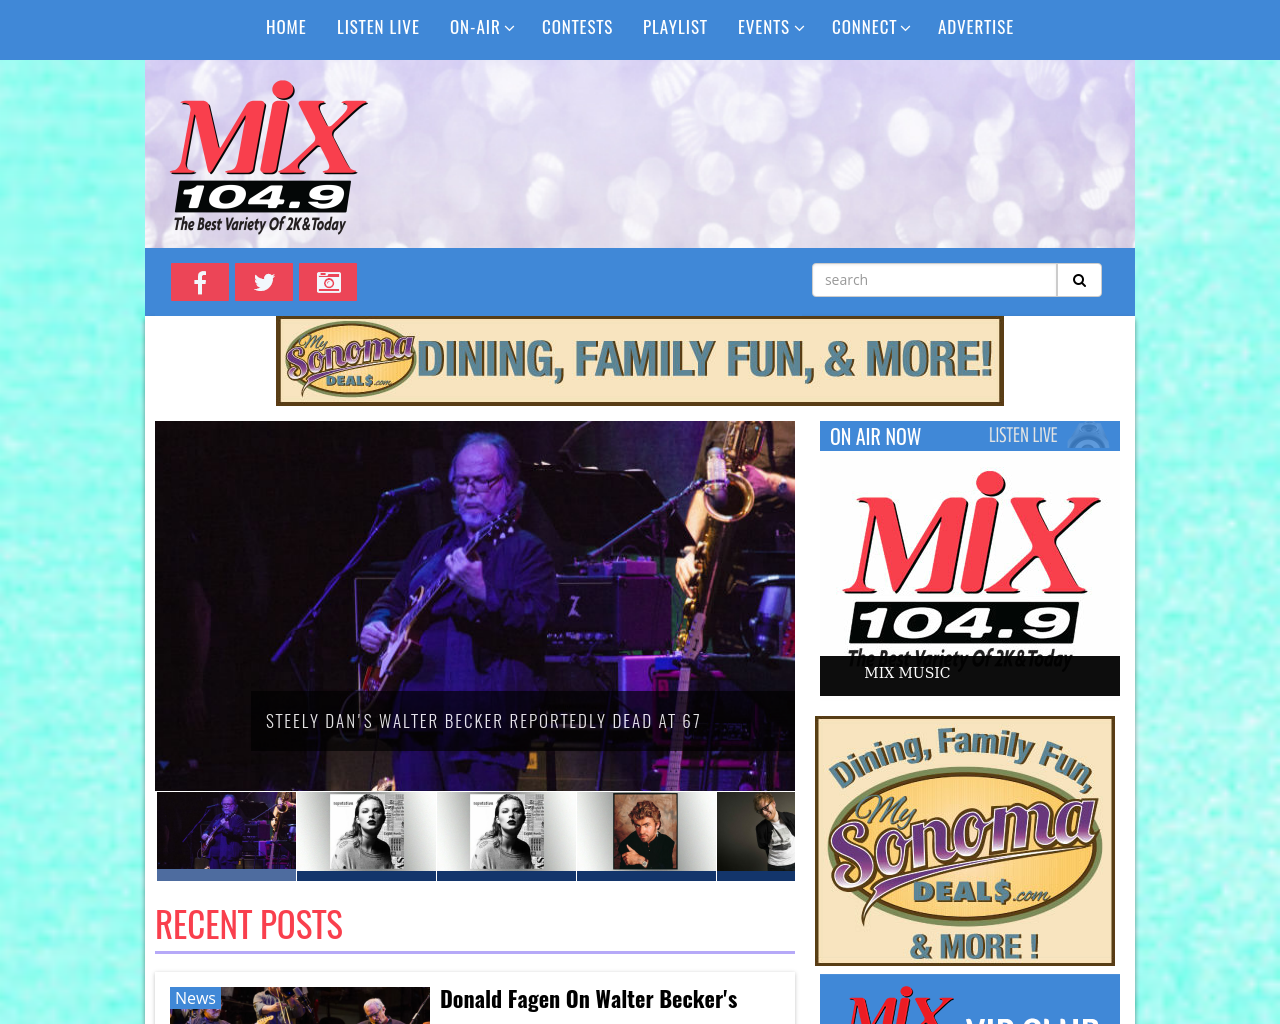 Mix-104.9-FM-Advertising-Reviews-Pricing